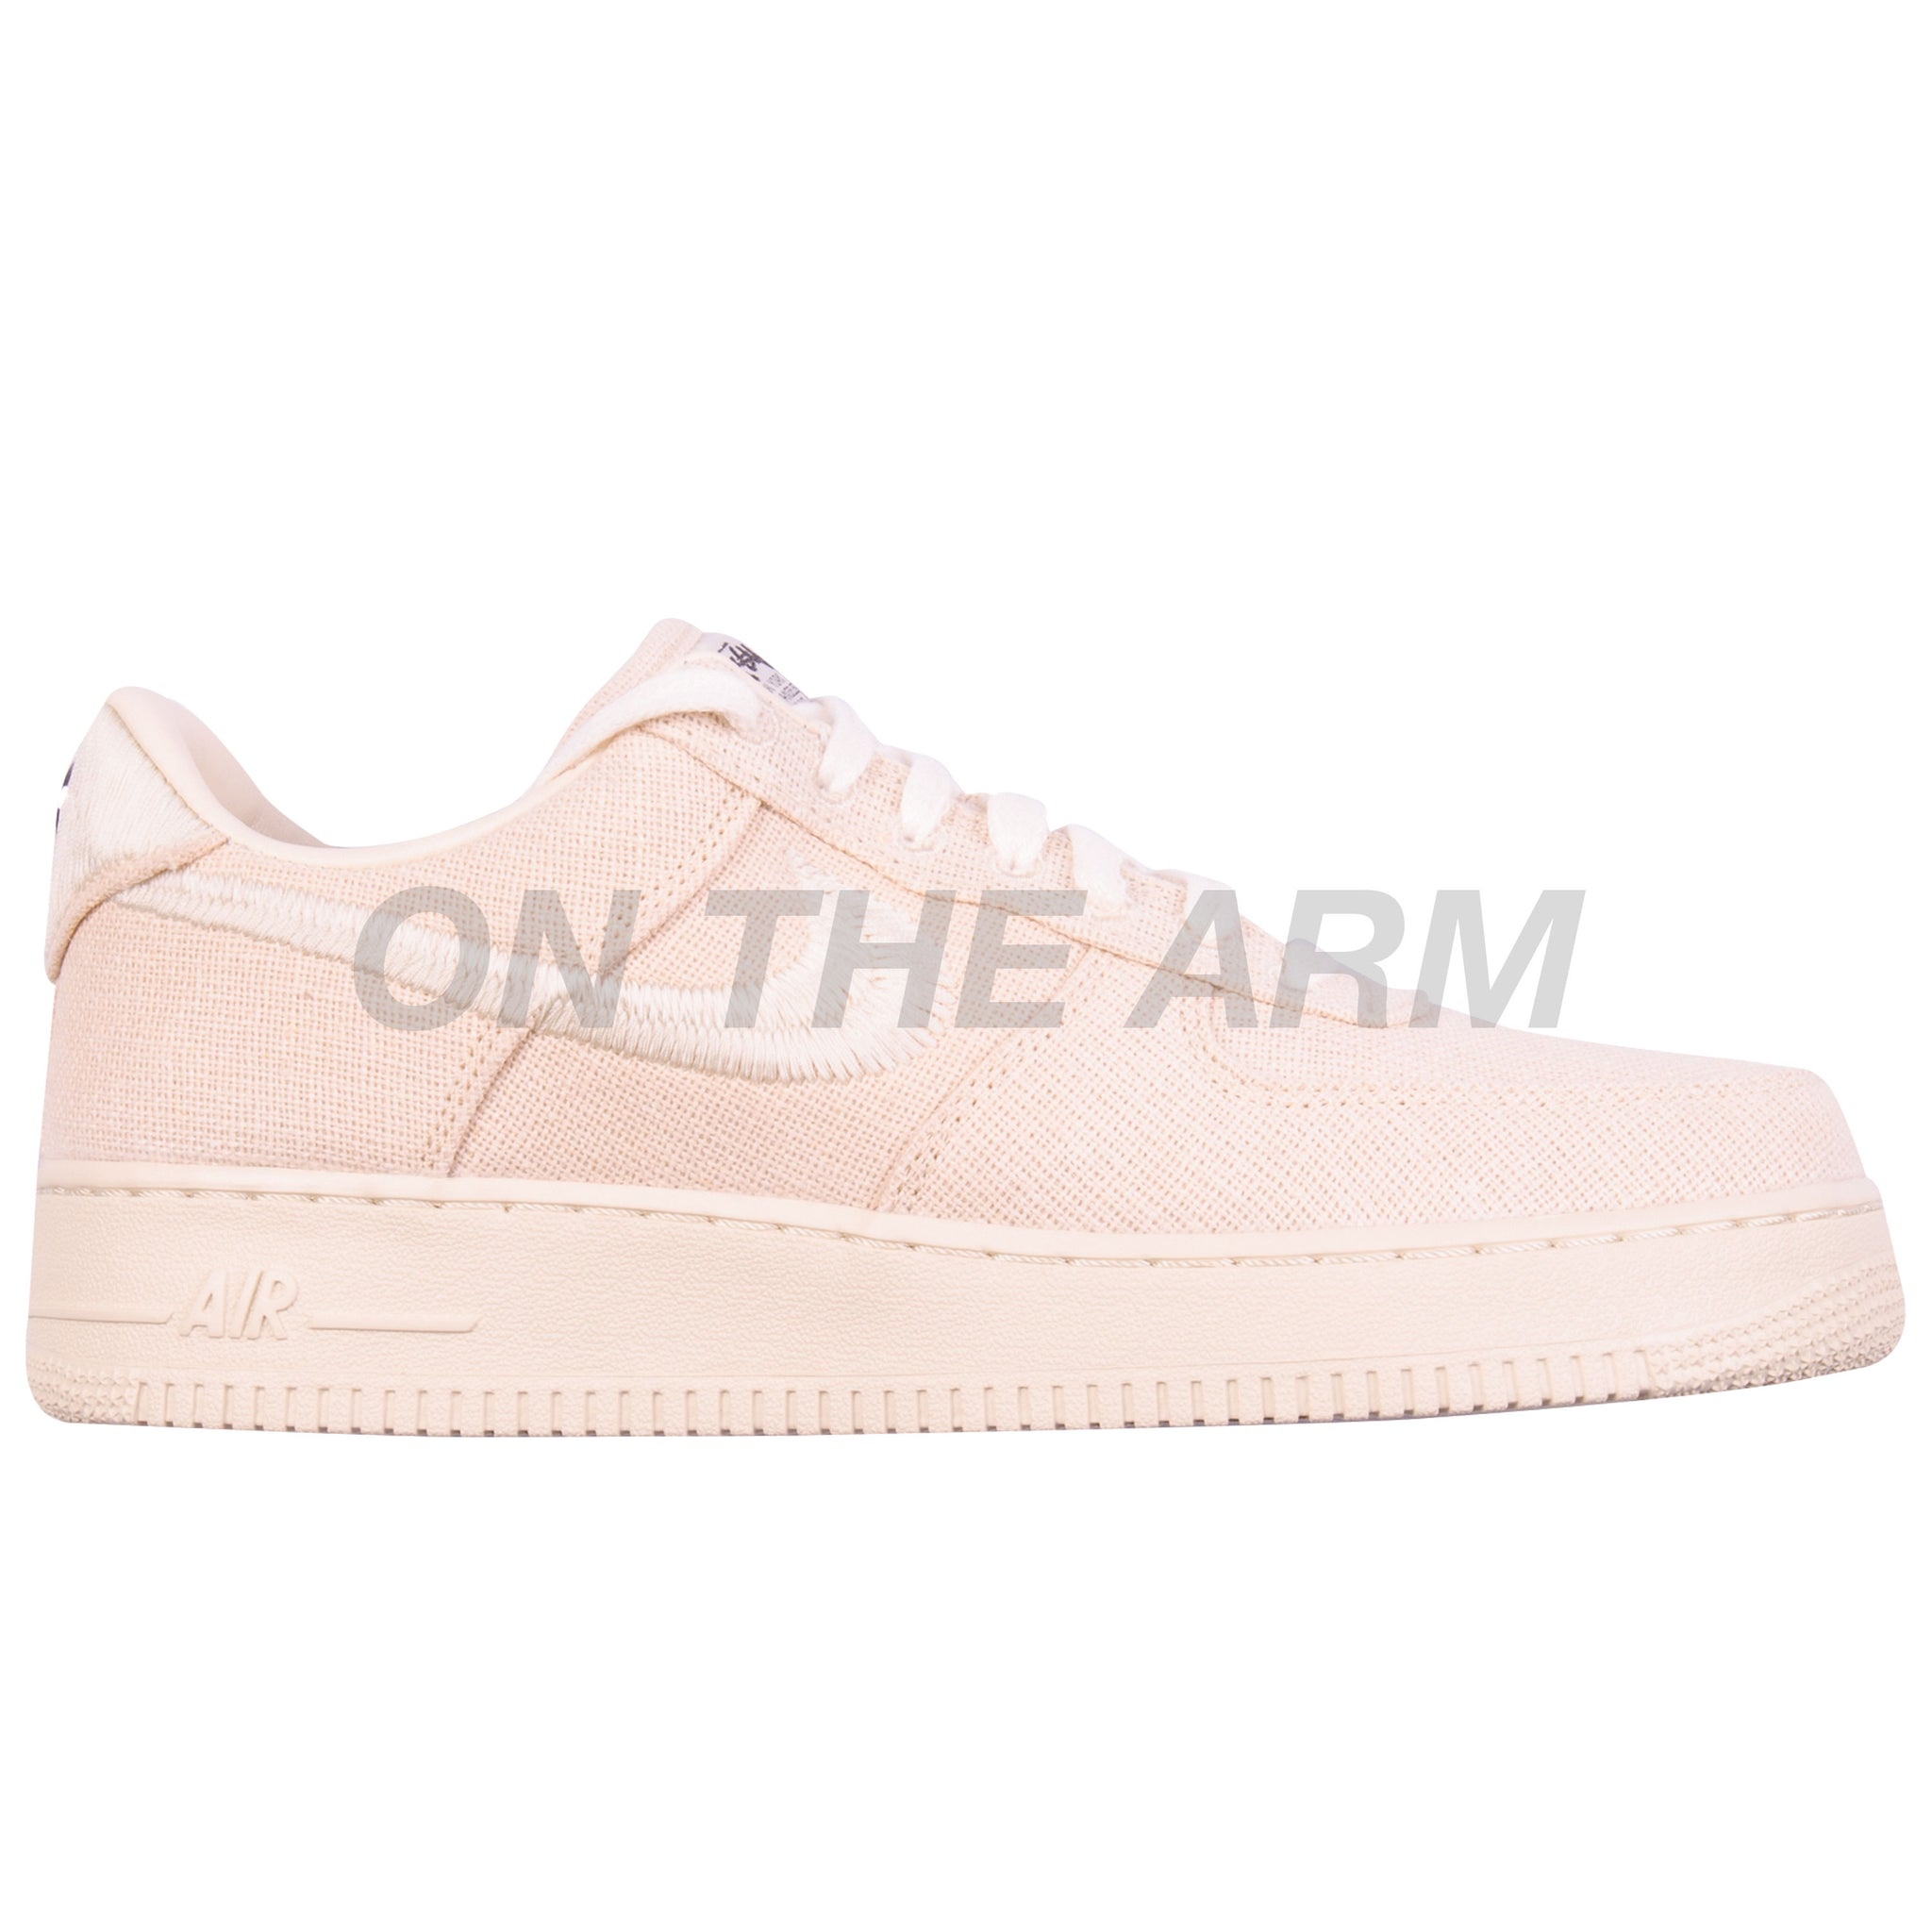 Nike Fossil Stussy Air Force 1 Low